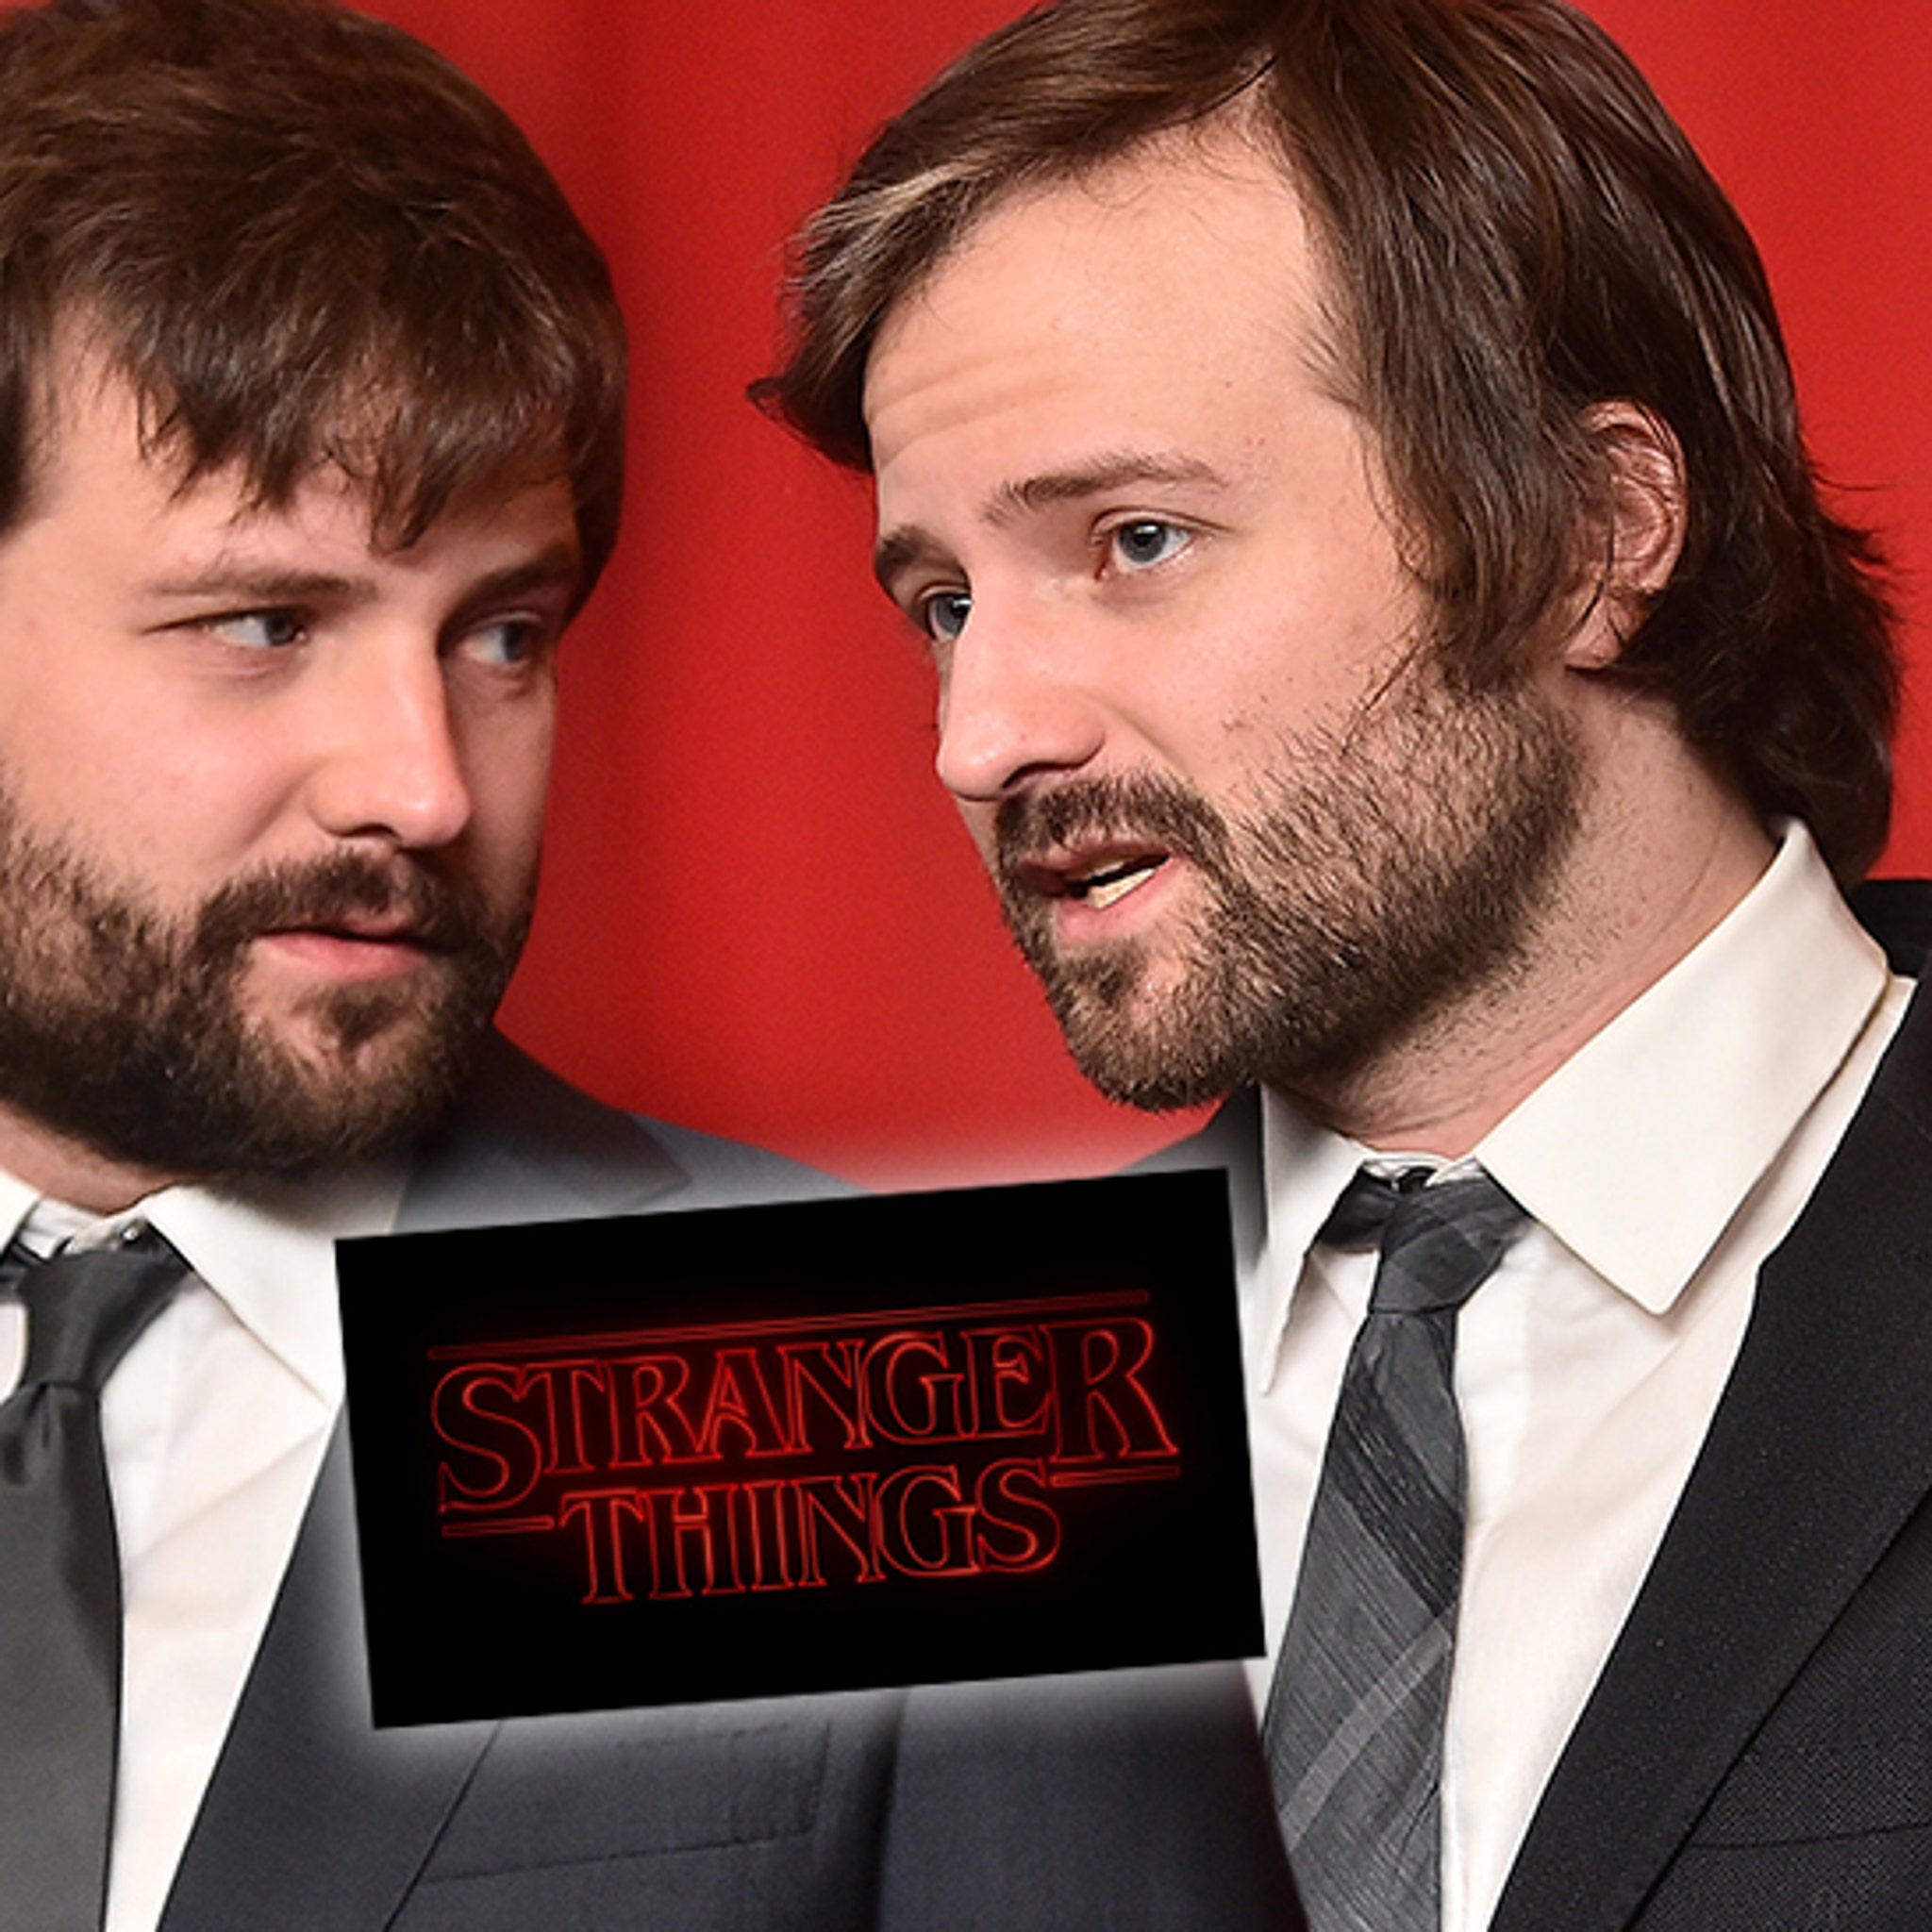 Stranger Things' Duffer Brothers Have Proof They Didn't Steal Show Idea